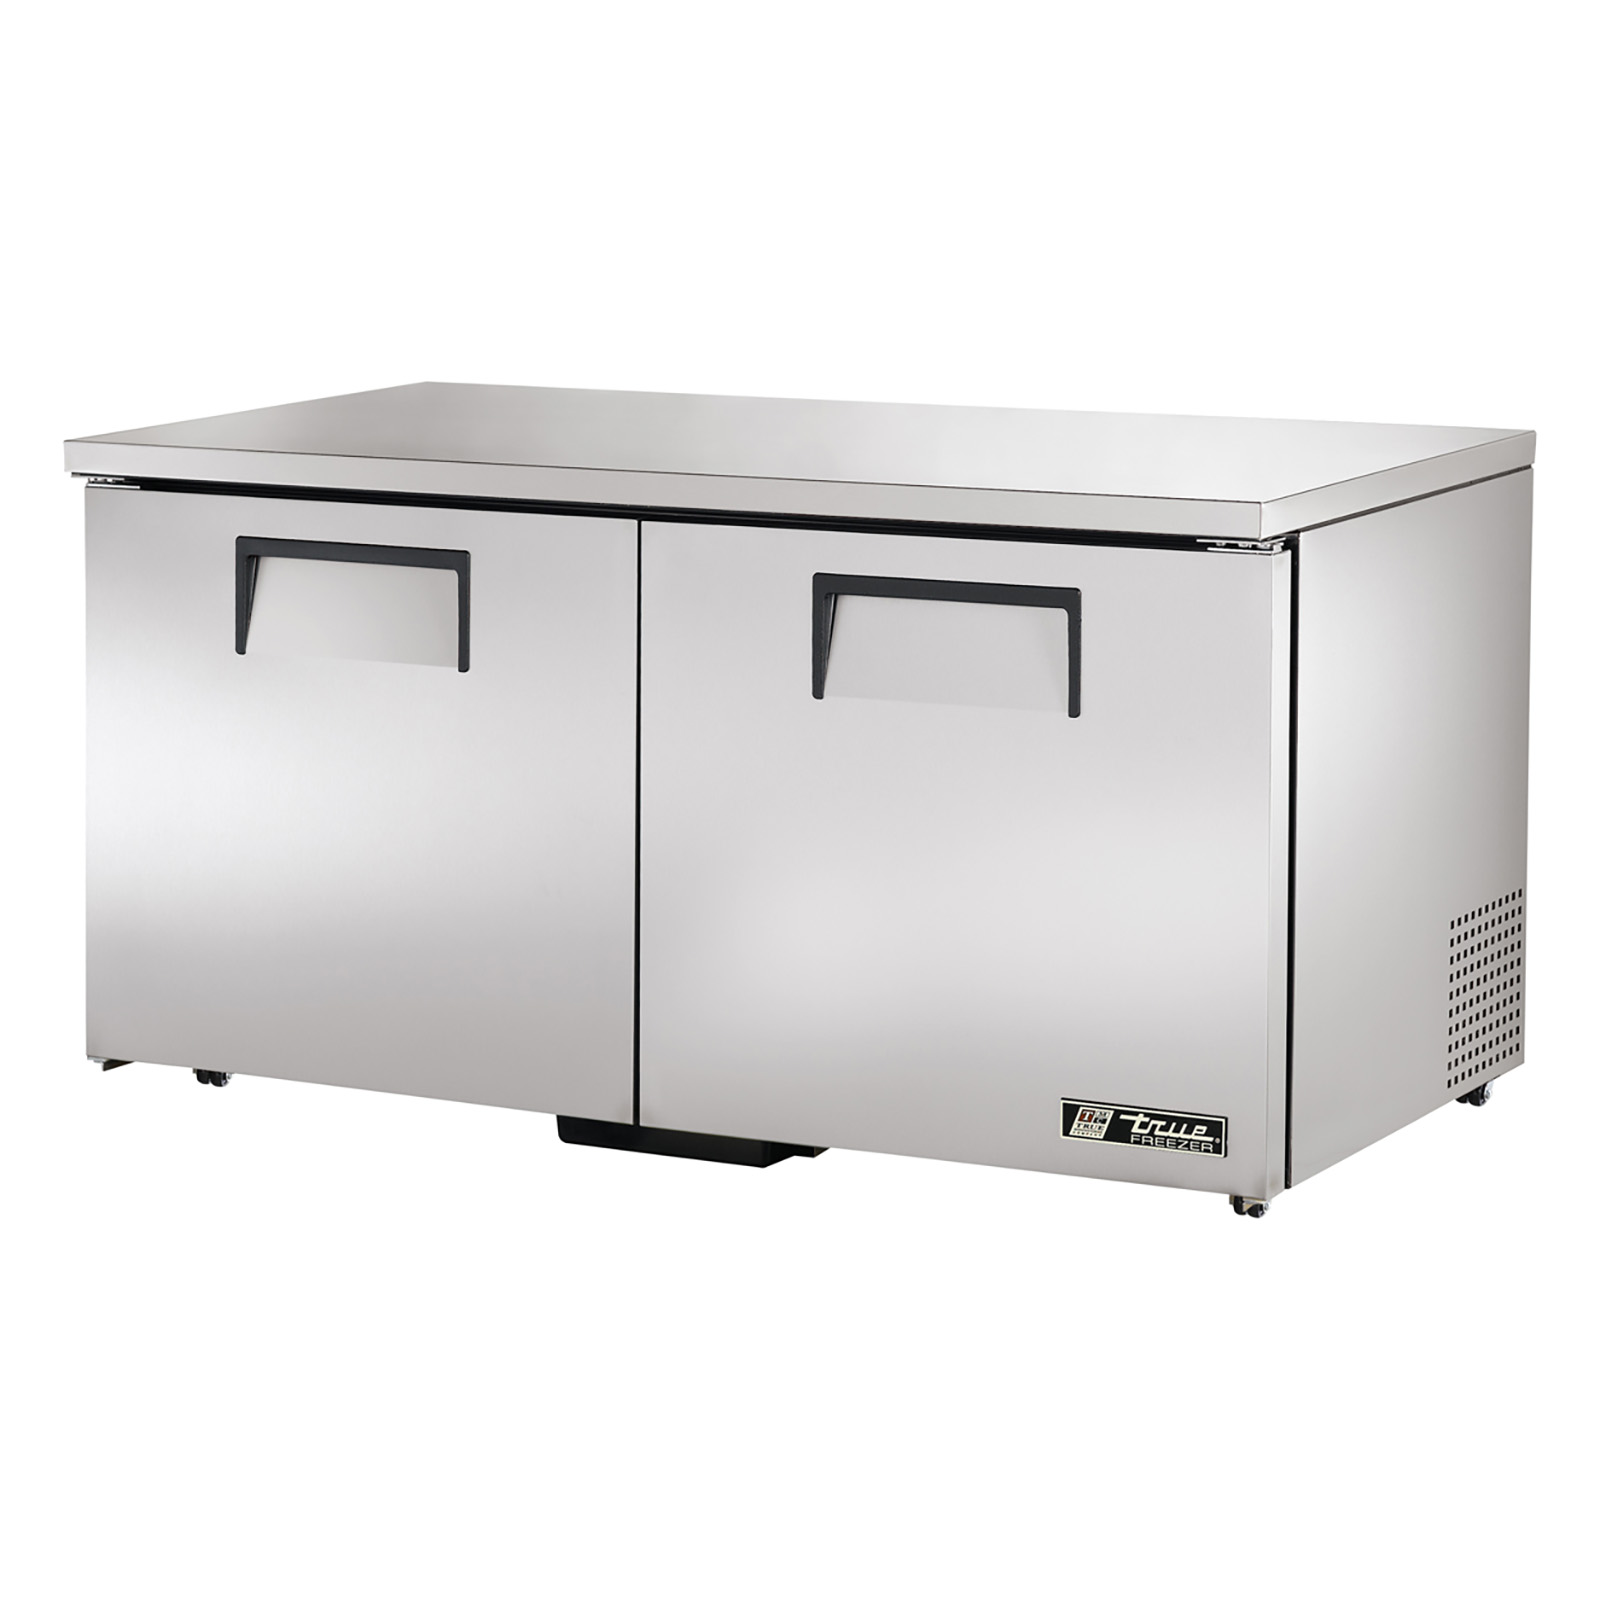 TUC-60F-LP True - Low Profile Undercounter Freezer -10? F